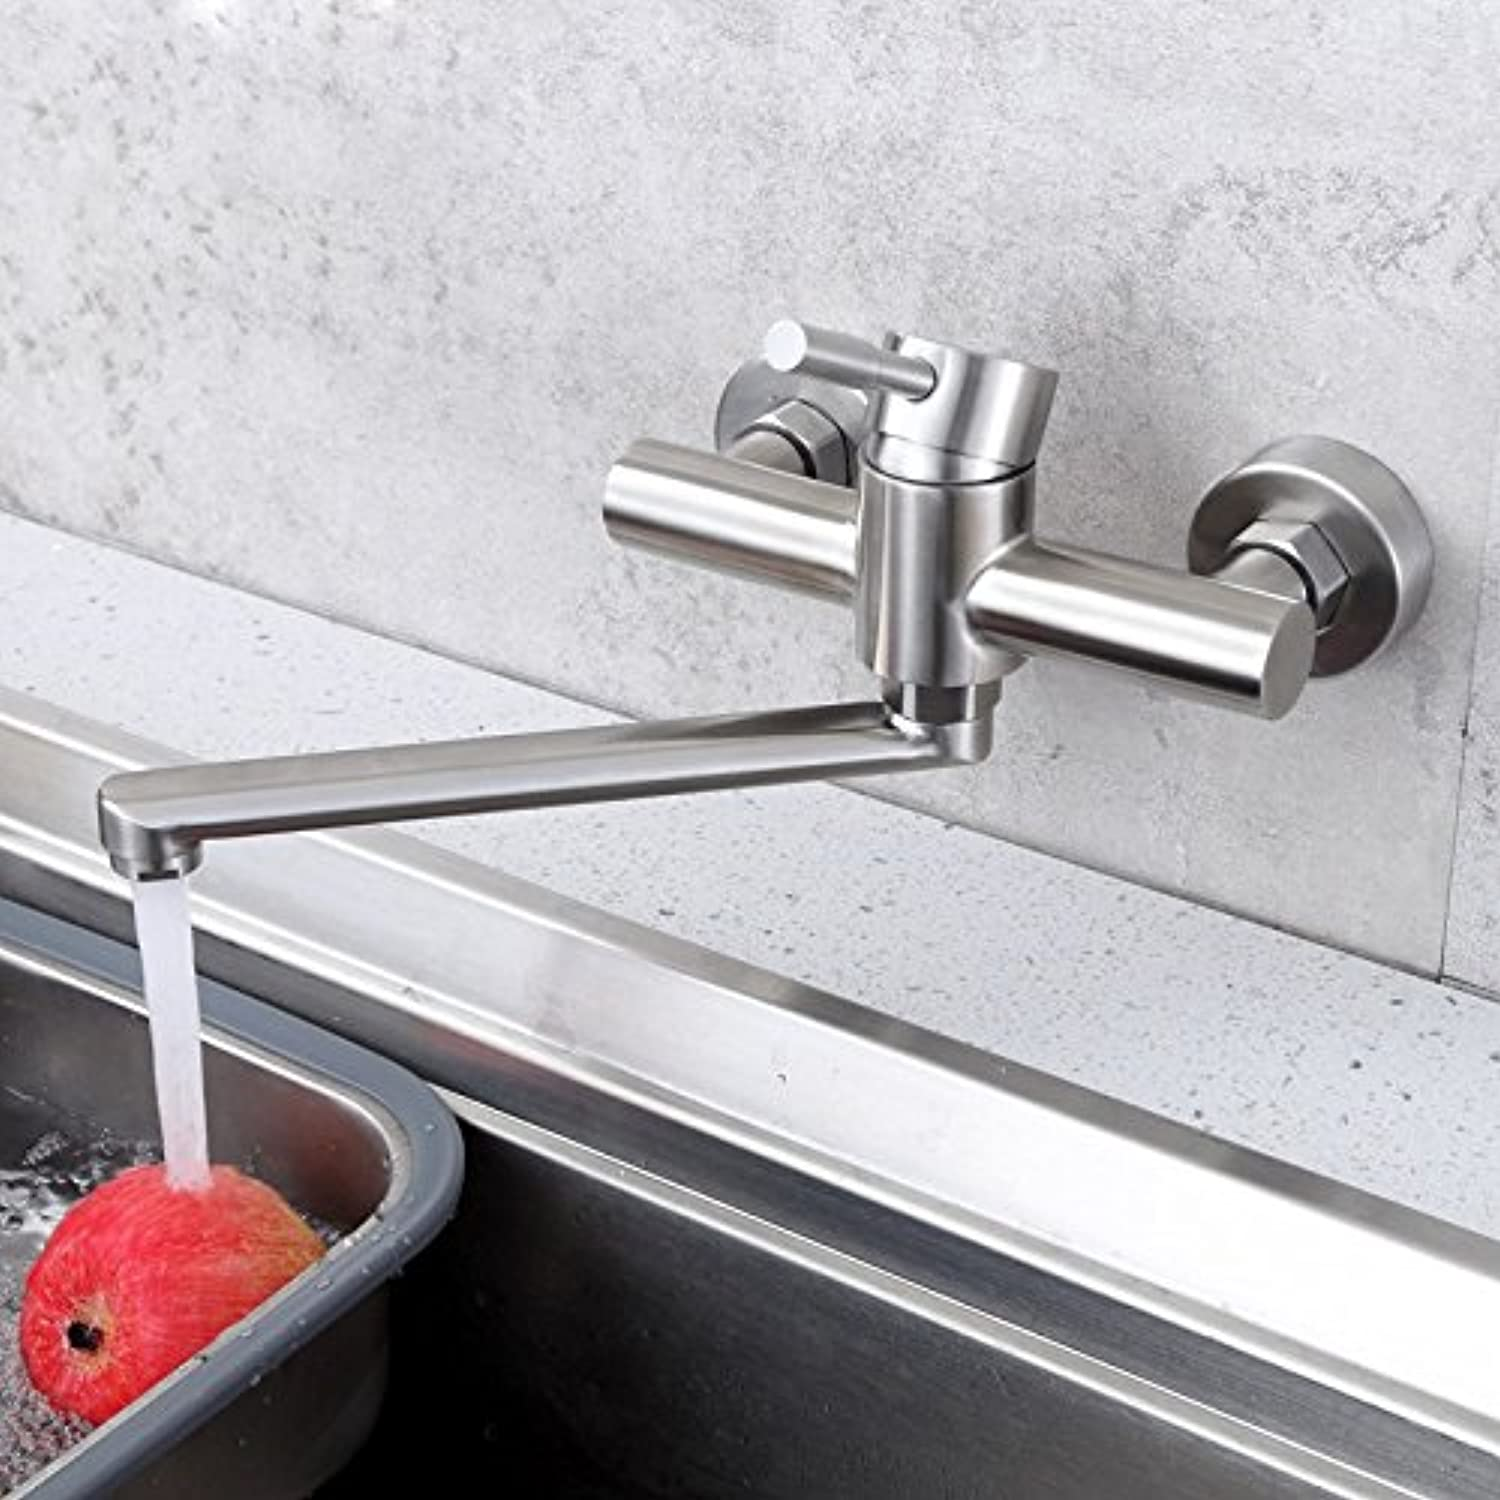 Hlluya Professional Sink Mixer Tap Kitchen Faucet The Kitchen dish washing basin balcony taps, 304 stainless steel into the wall 2-hole redating hot and cold laundry pool water faucet